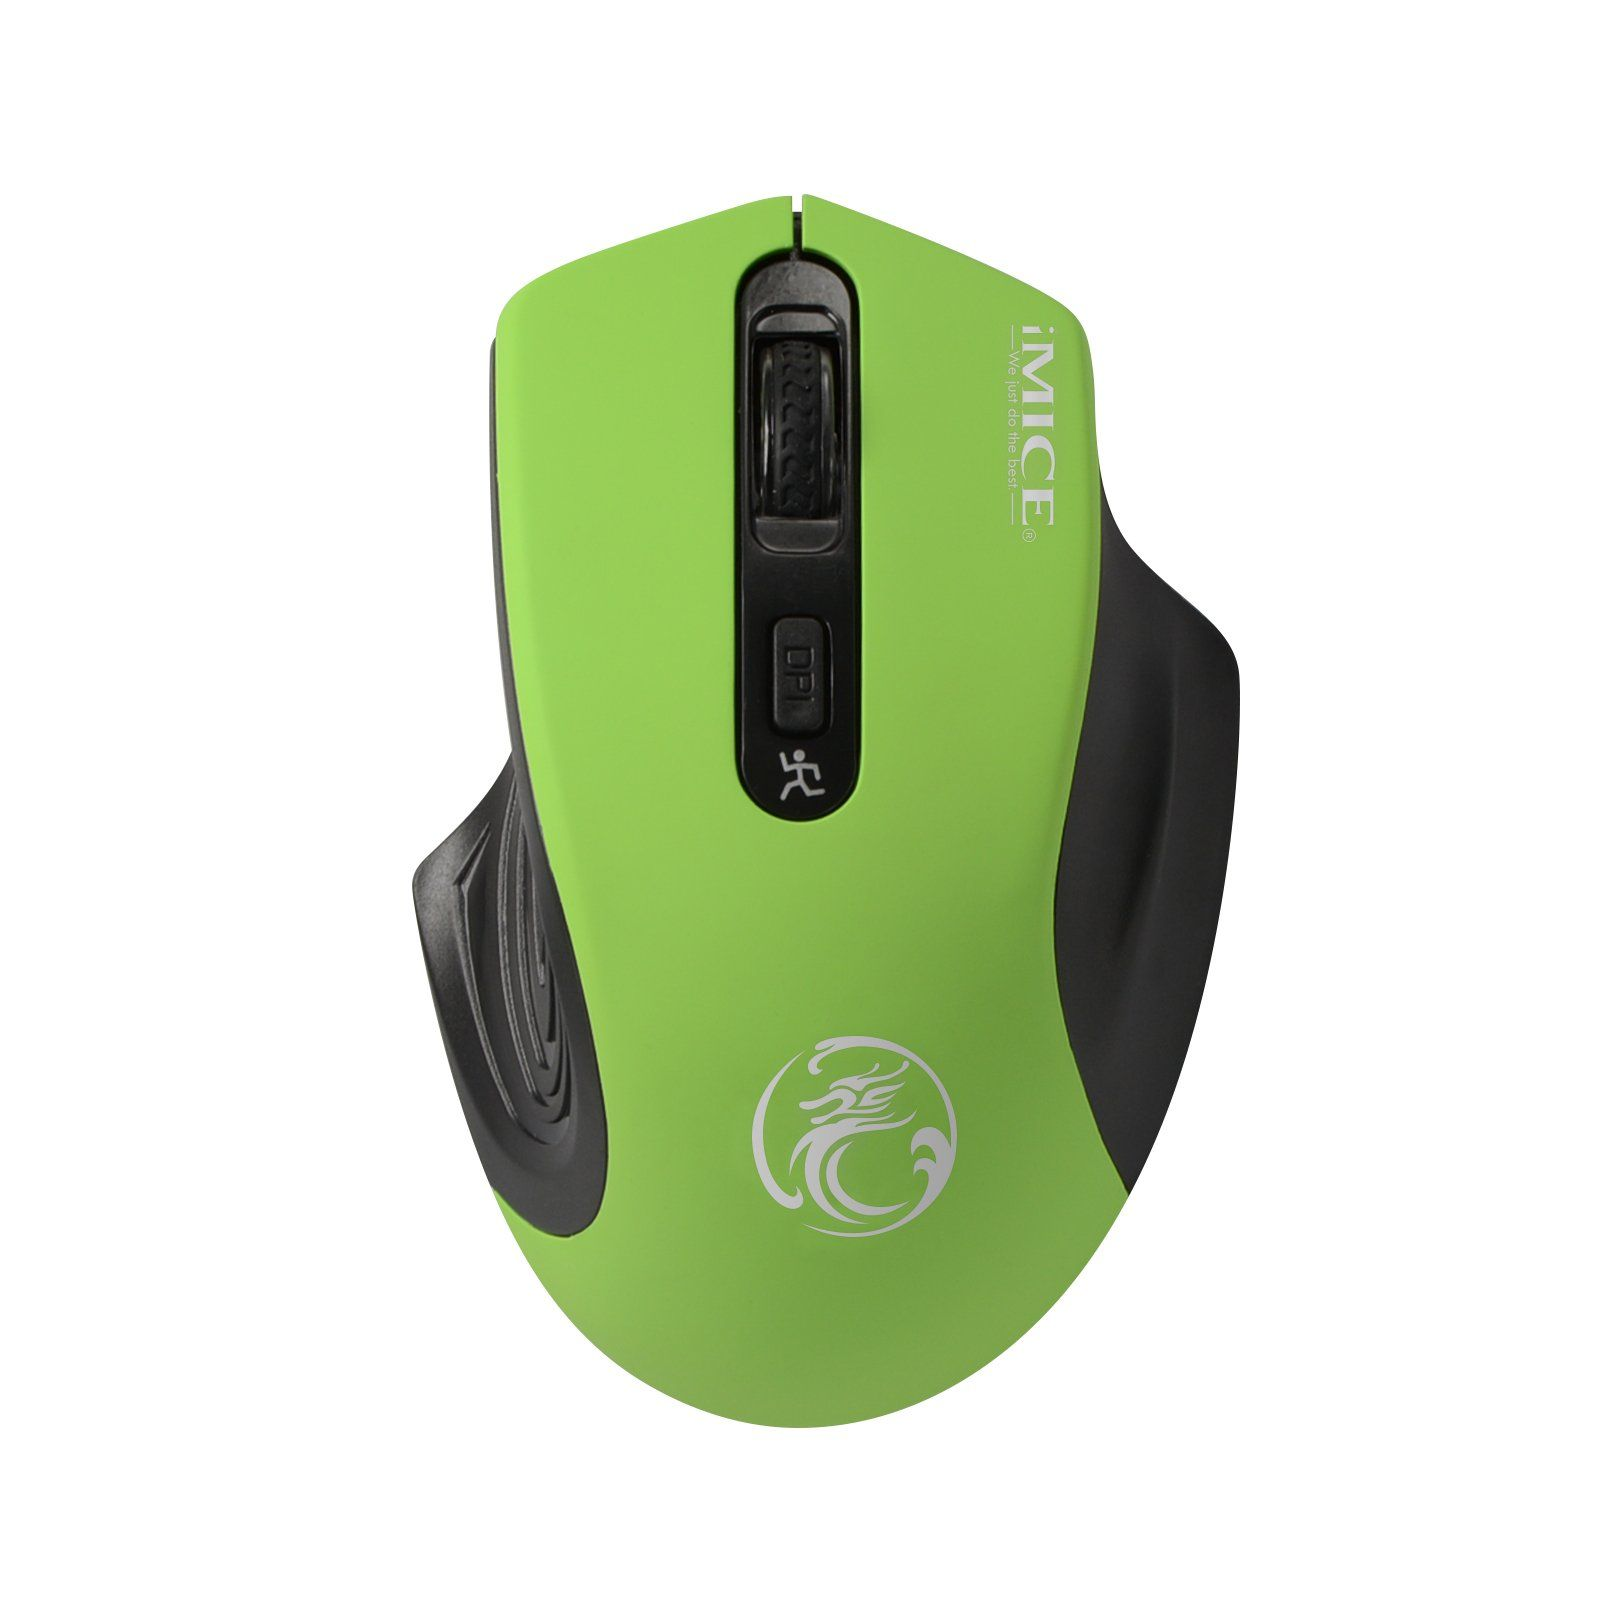 0787d0d52a3 imice USB Wireless mouse 2000DPI Adjustable USB 3.0 Receiver Optical  Computer Mouse 2.4GHz Ergonomic Mice For Laptop PC Mouse